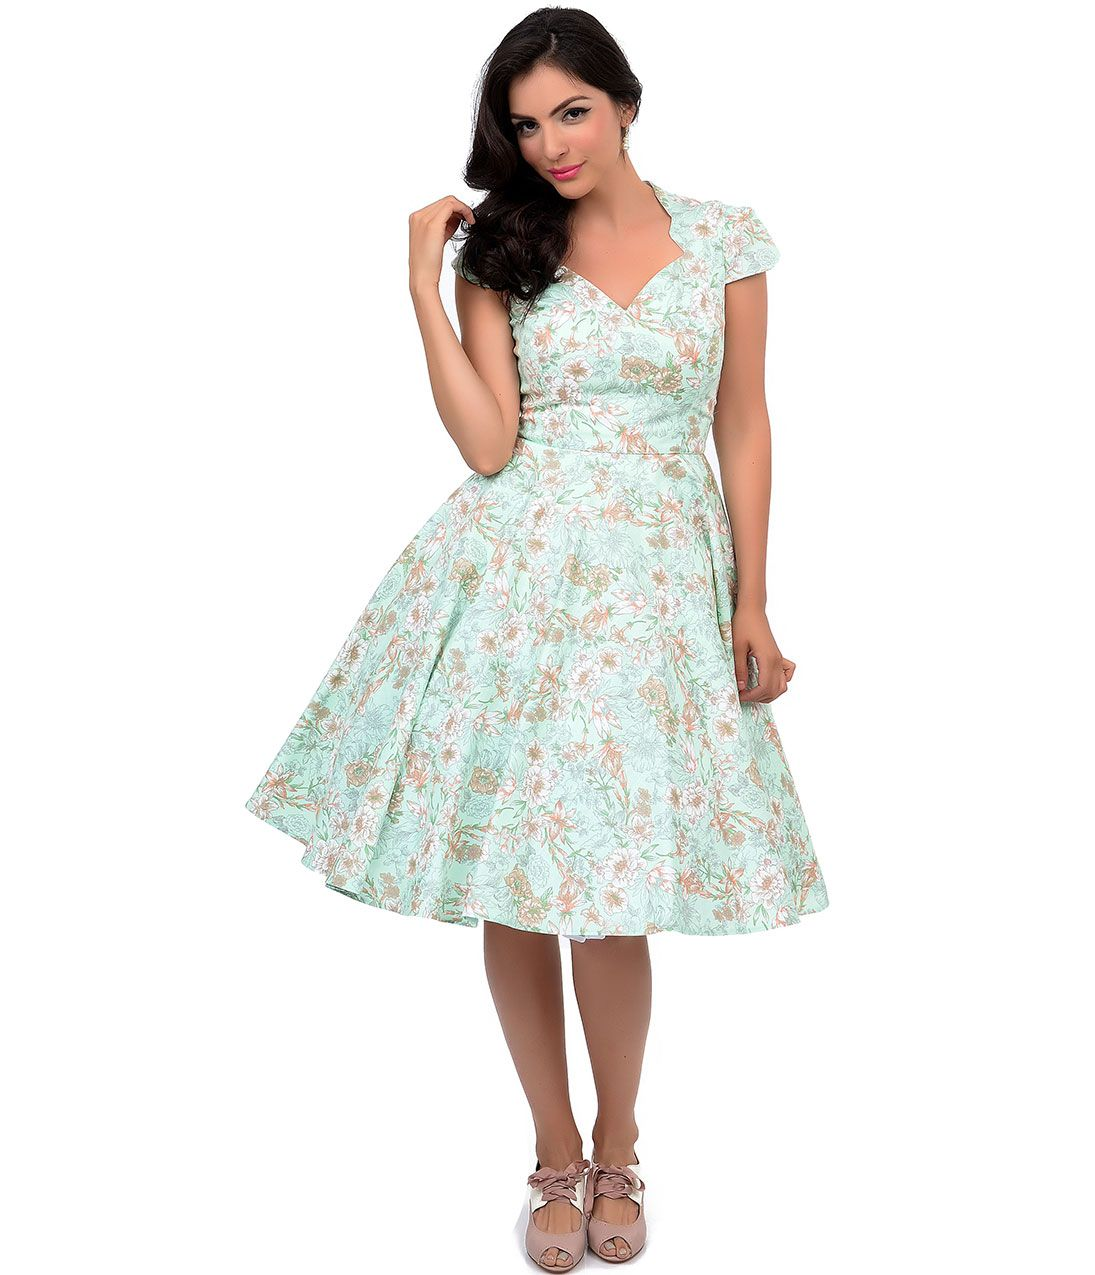 Hell Bunny 1950s Style Green Taupe Floral Camellia Swing Dress $88.00 AT vintagedancer.com